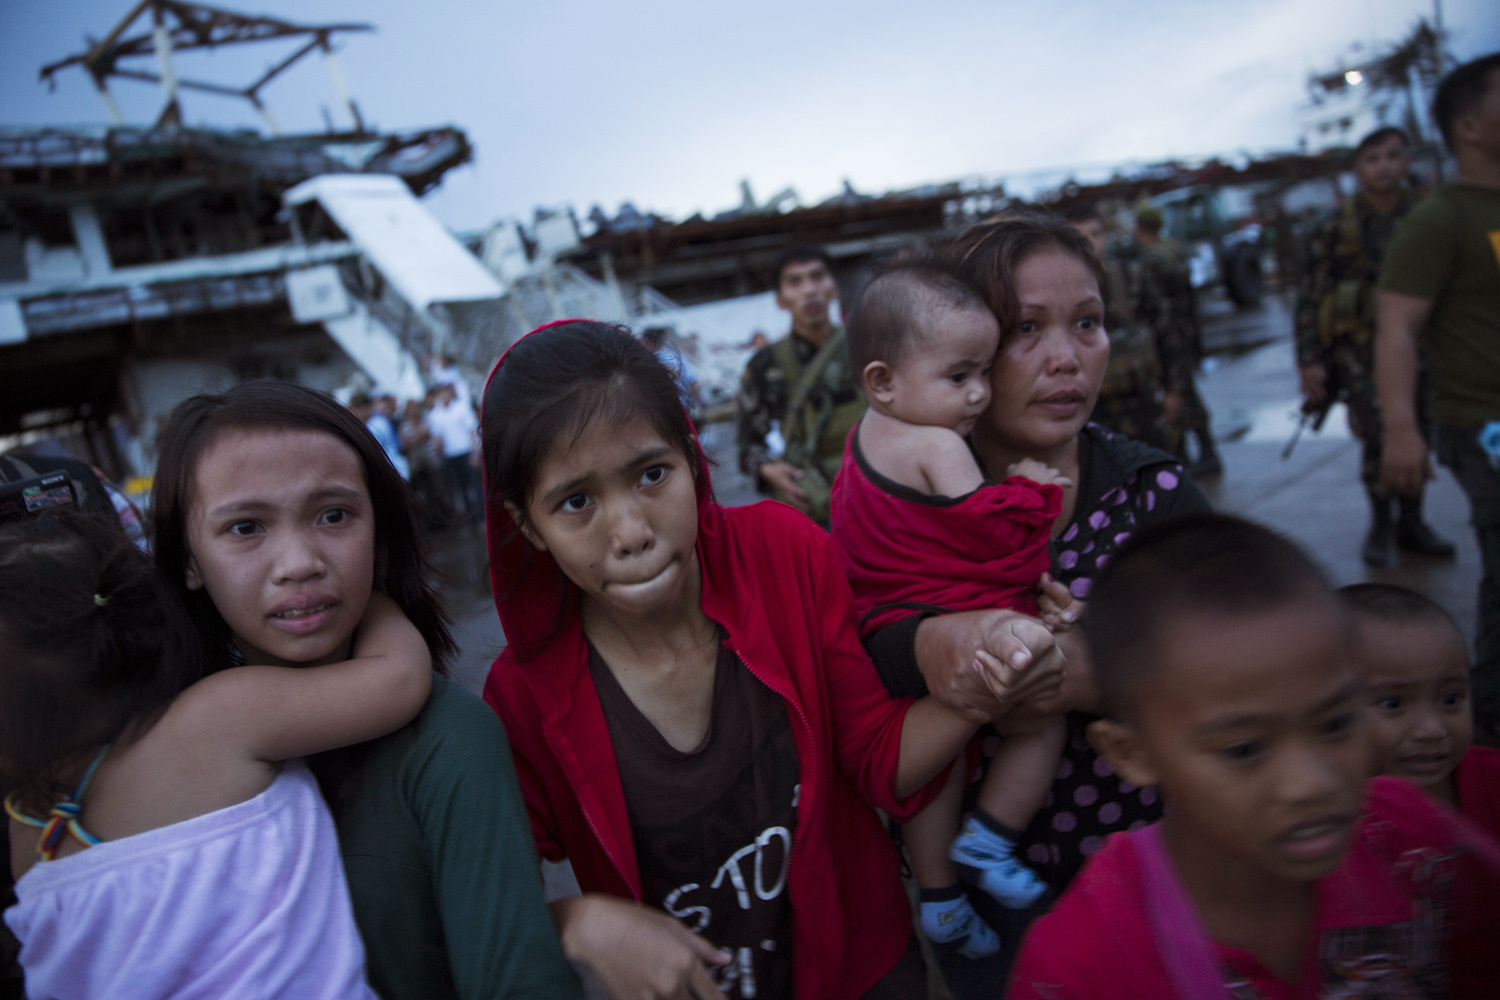 People effected by  Typhoon Haiyan react after being unable to board a US military aid evacuation flight from Tacloban Airport in Tacloban, on Leyte Island, Philippines on November 12, 2013.